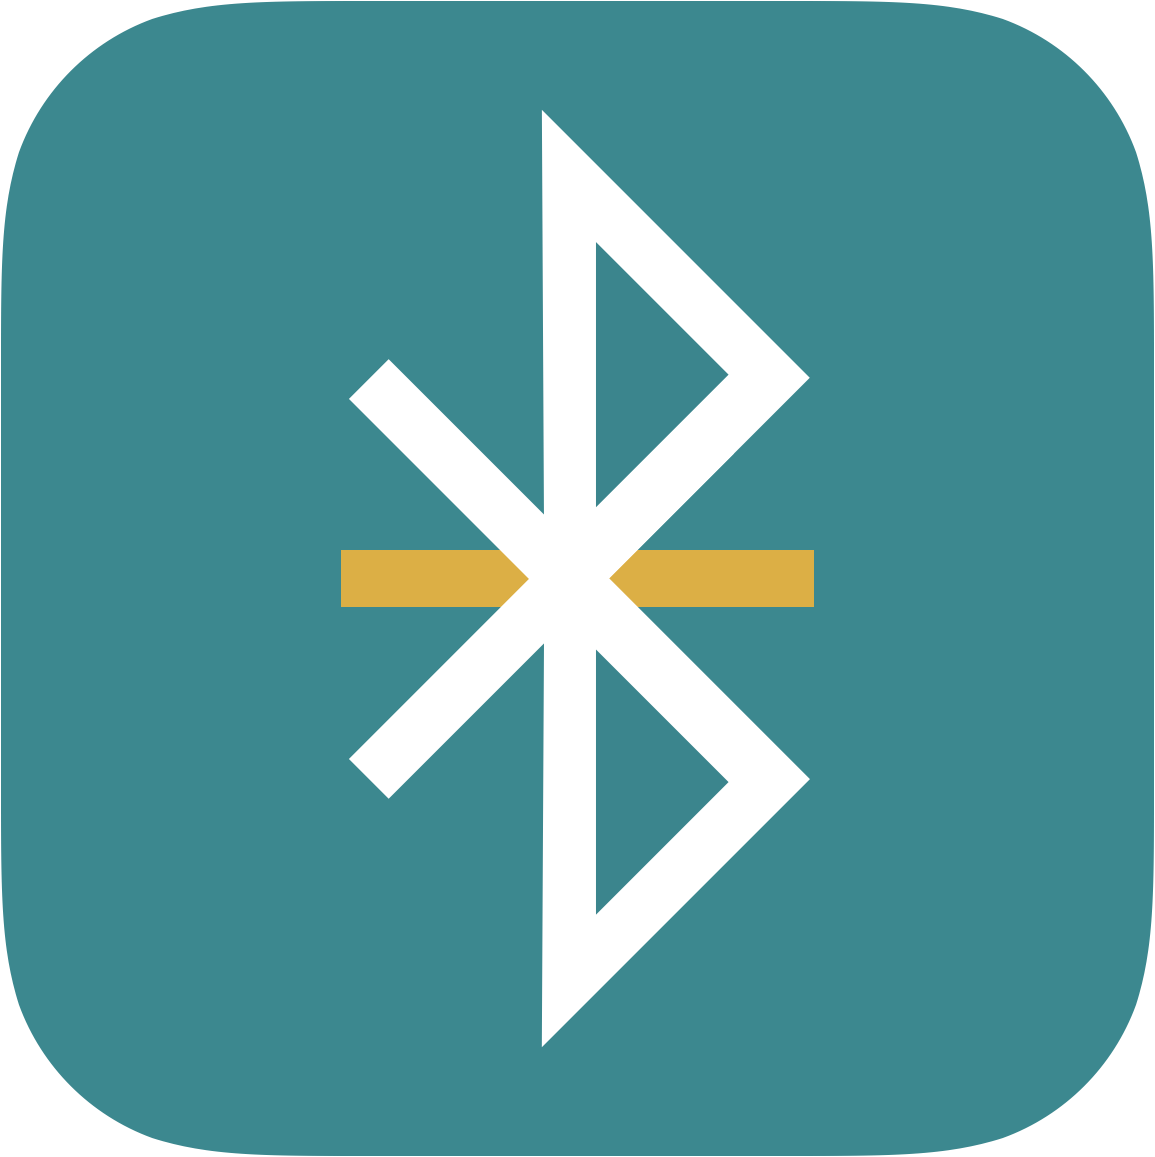 BLExAR App - Bluetooth and Arduino App that allows communication and control of an Arduino Board.